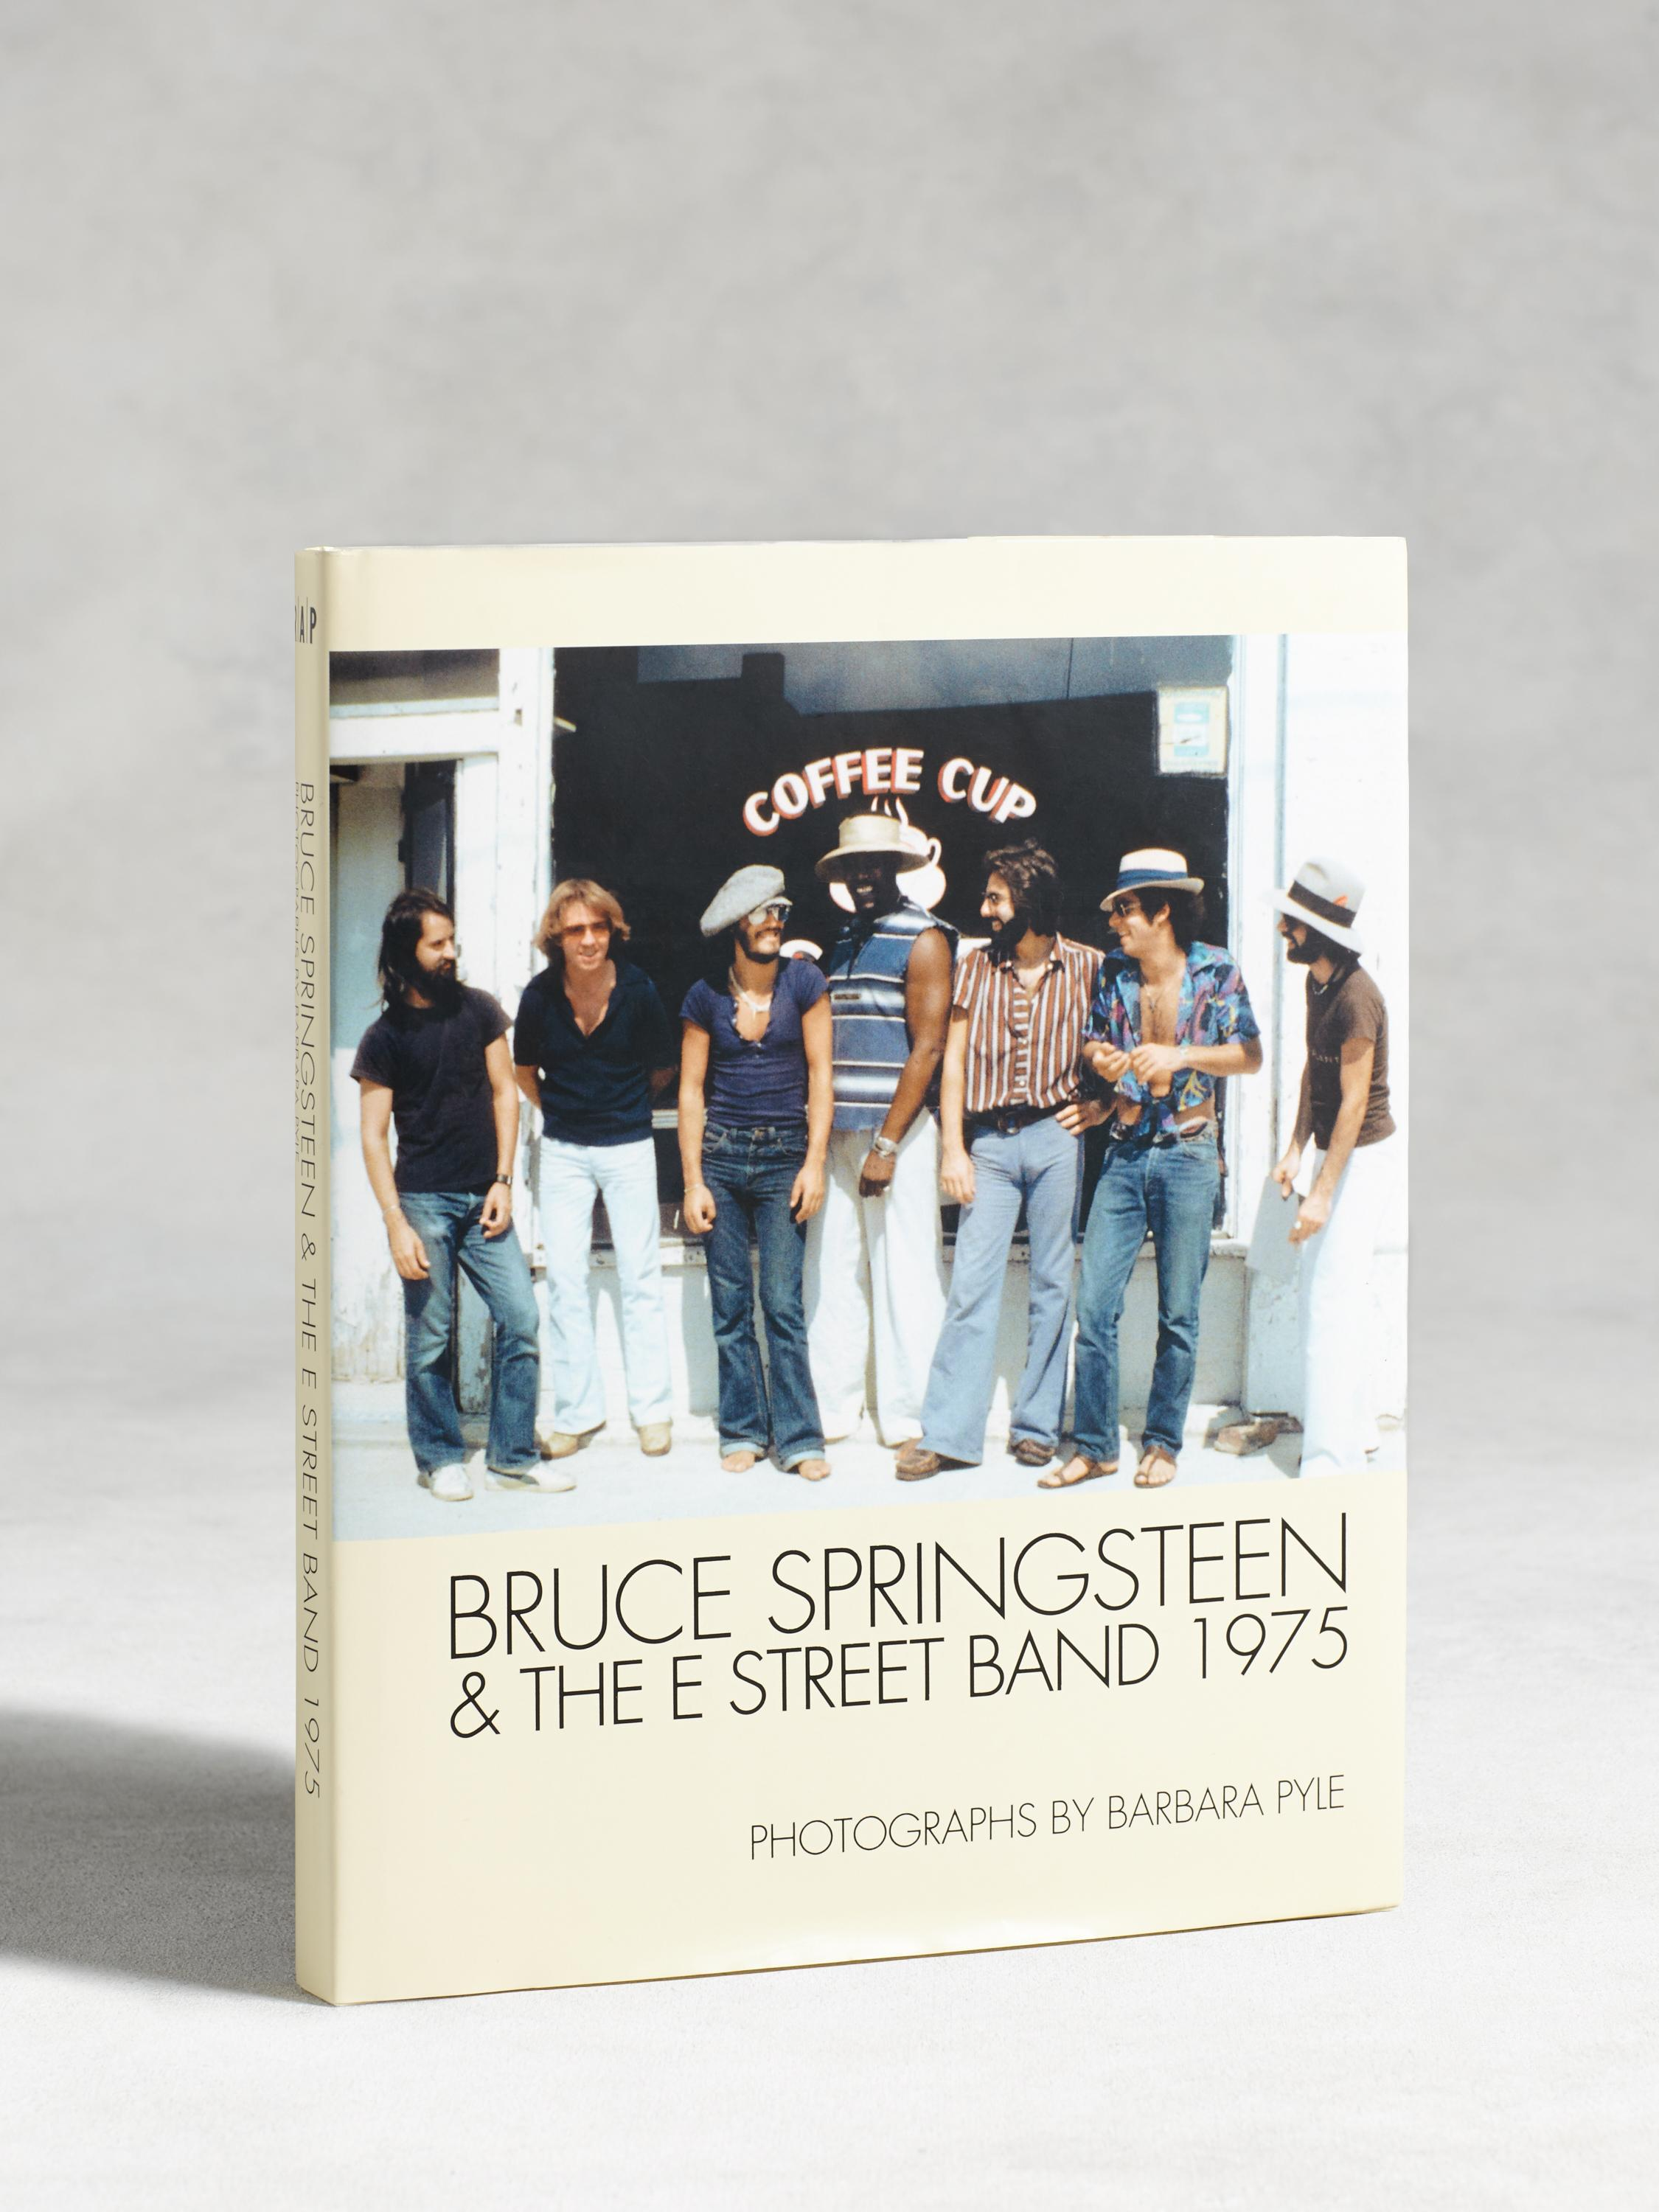 Bruce Springsteen and the E Street Band 1975 by By Barbara Pyle